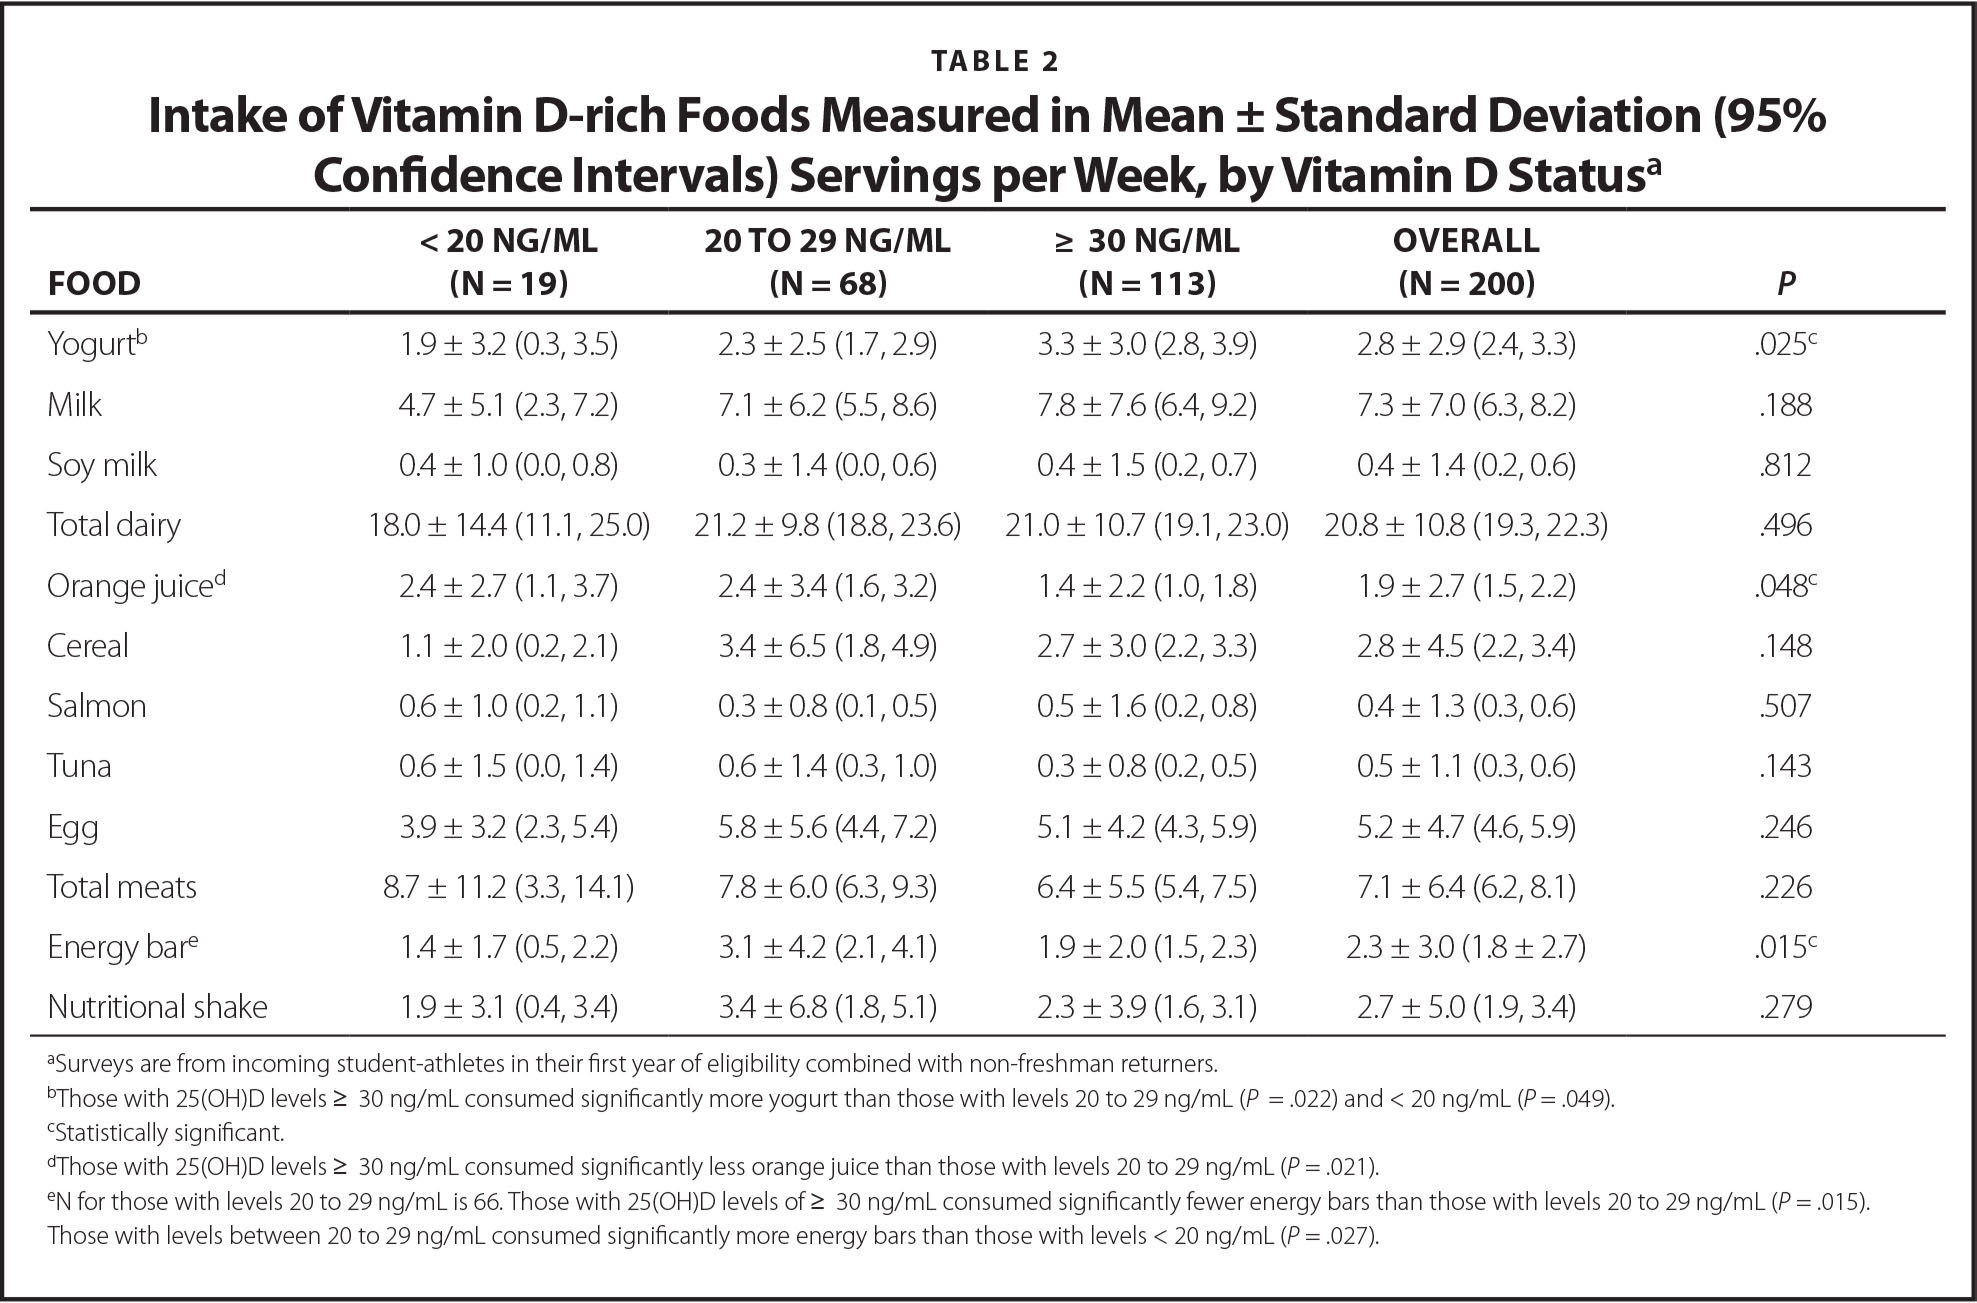 Intake of Vitamin D-rich Foods Measured in Mean ± Standard Deviation (95% Confidence Intervals) Servings per Week, by Vitamin D Statusa